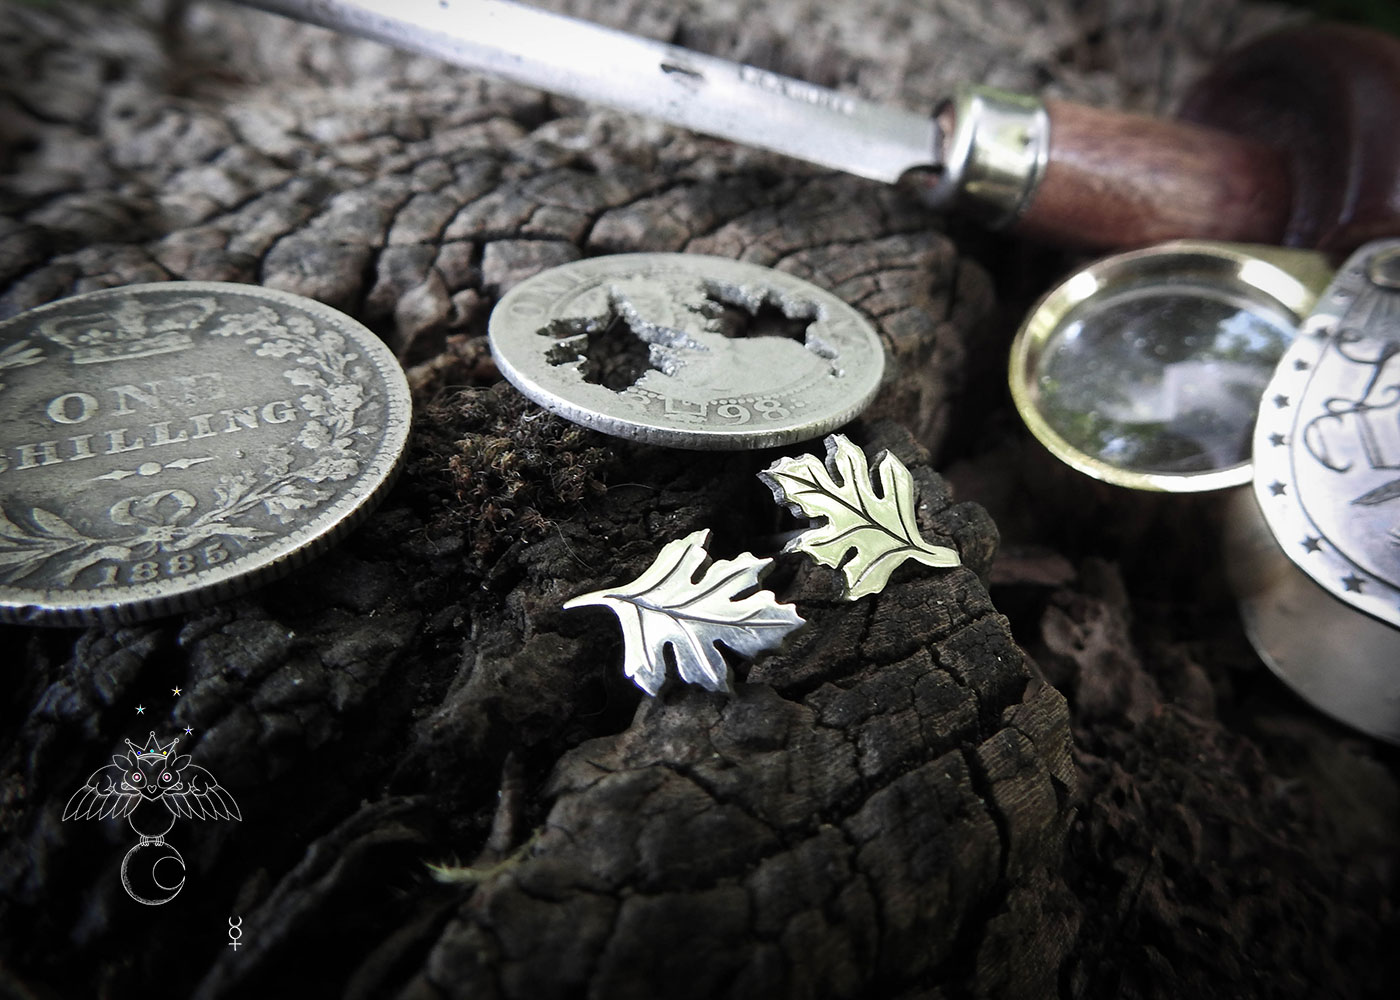 May Tree earrings - Hawthorn leaf stud earrings handcrafted and recycled from a 100 year old silver shilling.